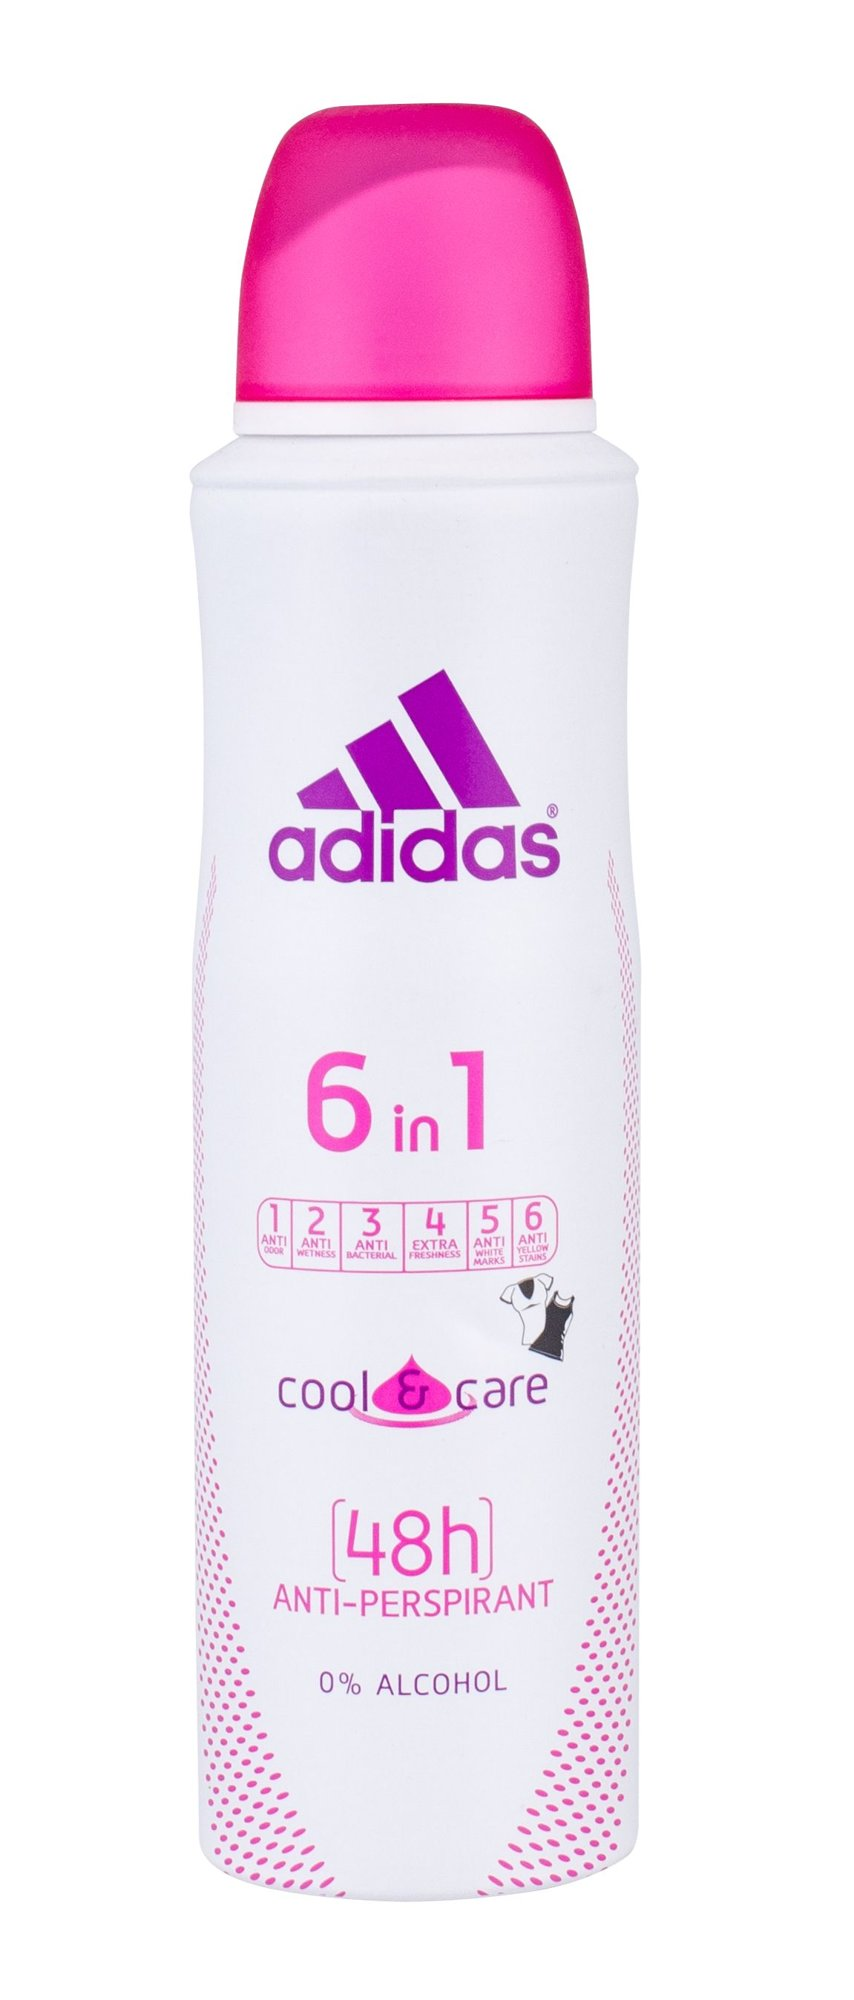 Adidas 6in1 Cool & Care 48h (Antiperspirant, W, 150 ml)